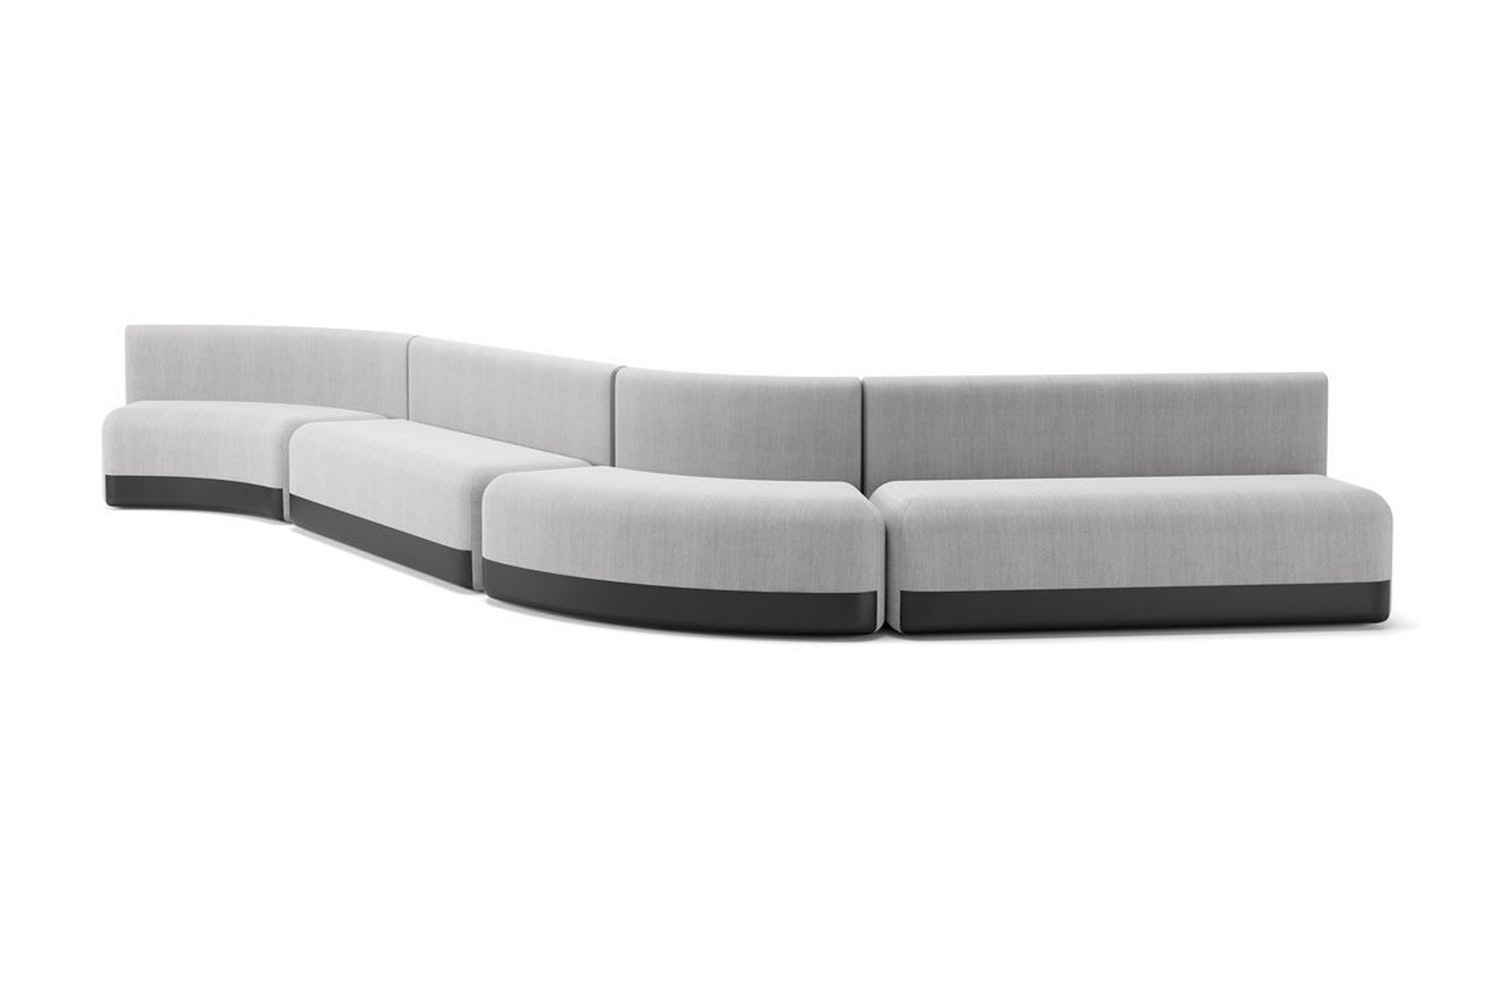 Season Sofa by Piero Lissoni for Viccarbe